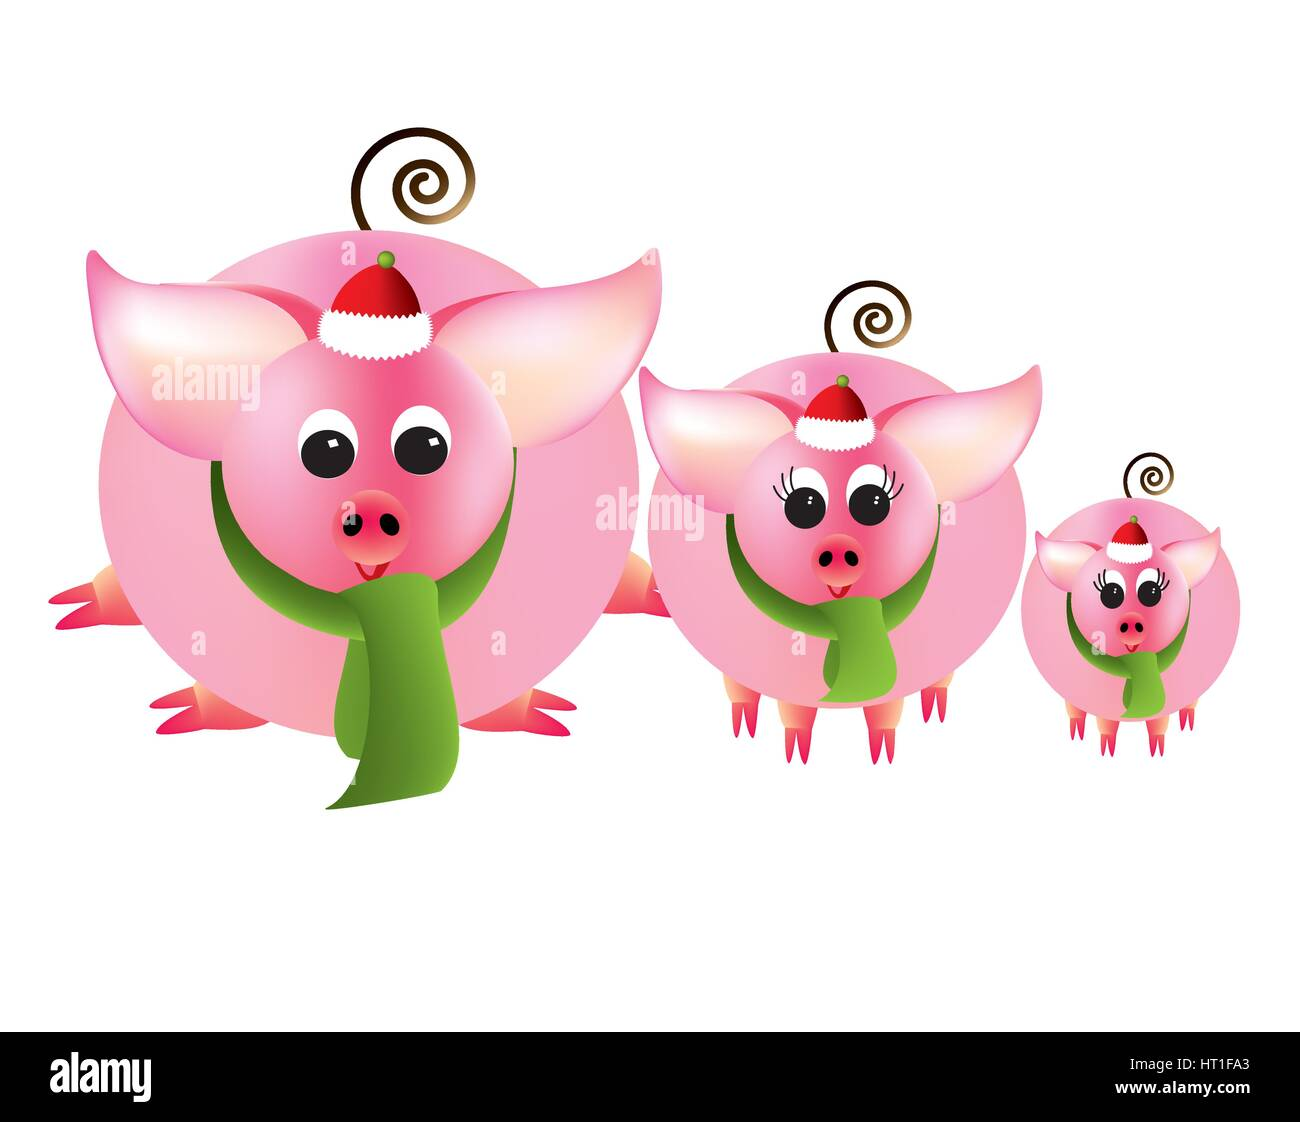 Merry Christmas from three pink piggies - Stock Image